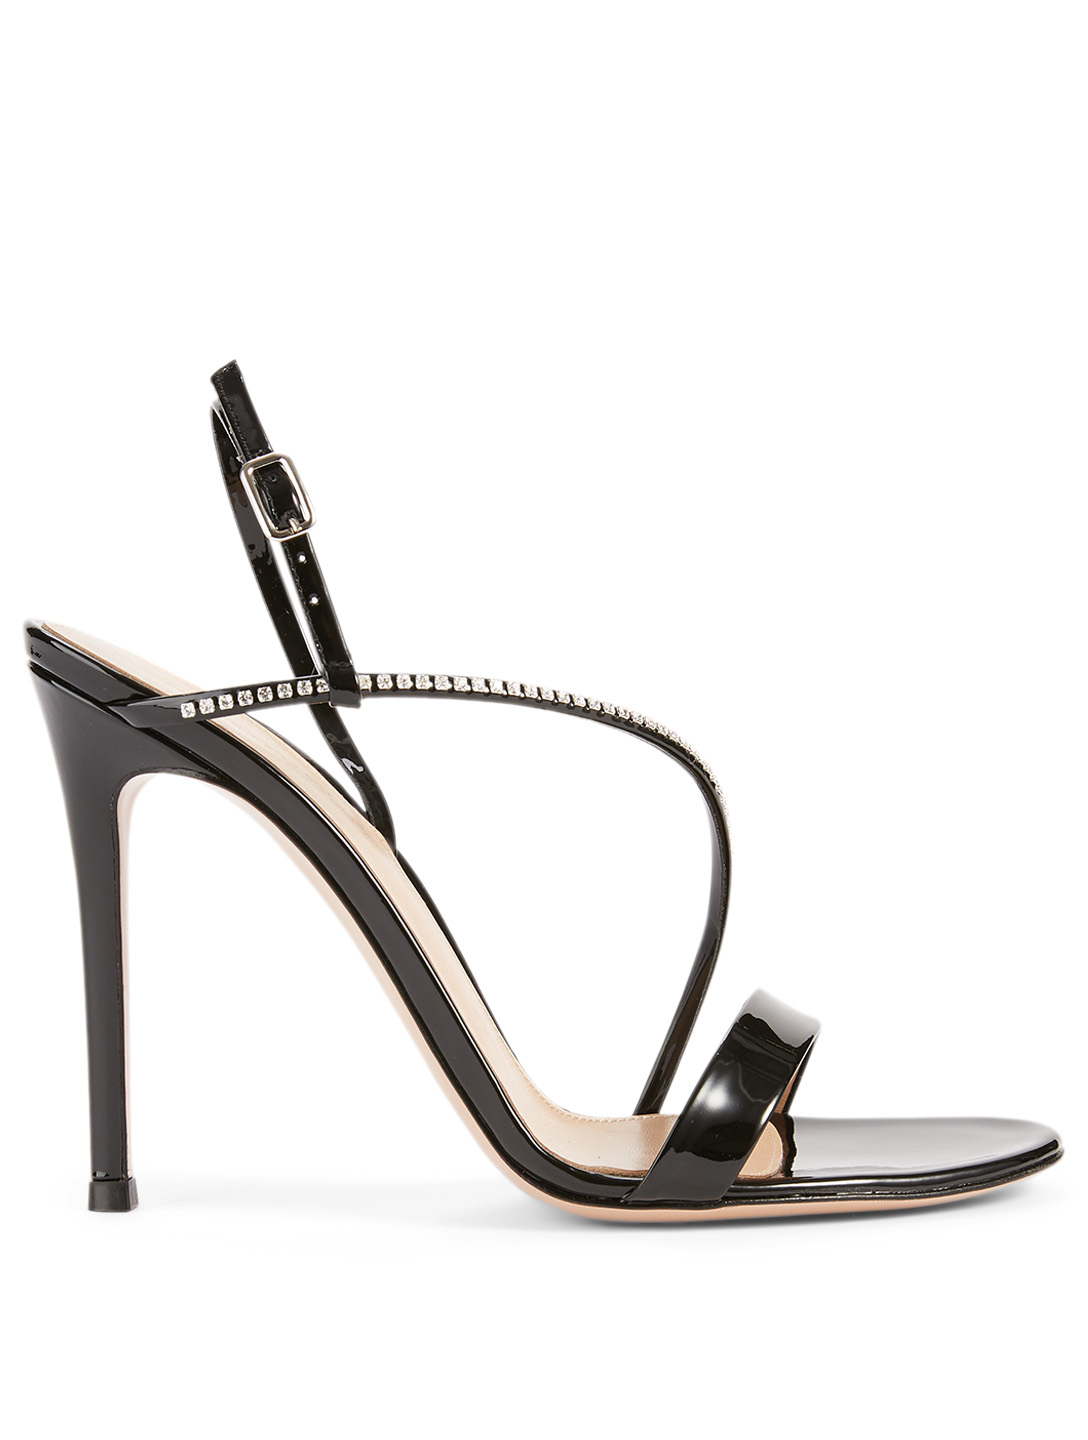 GIANVITO ROSSI Manhattan 105 Patent Leather Heeled Sandals With Crystal Strap Women's Black